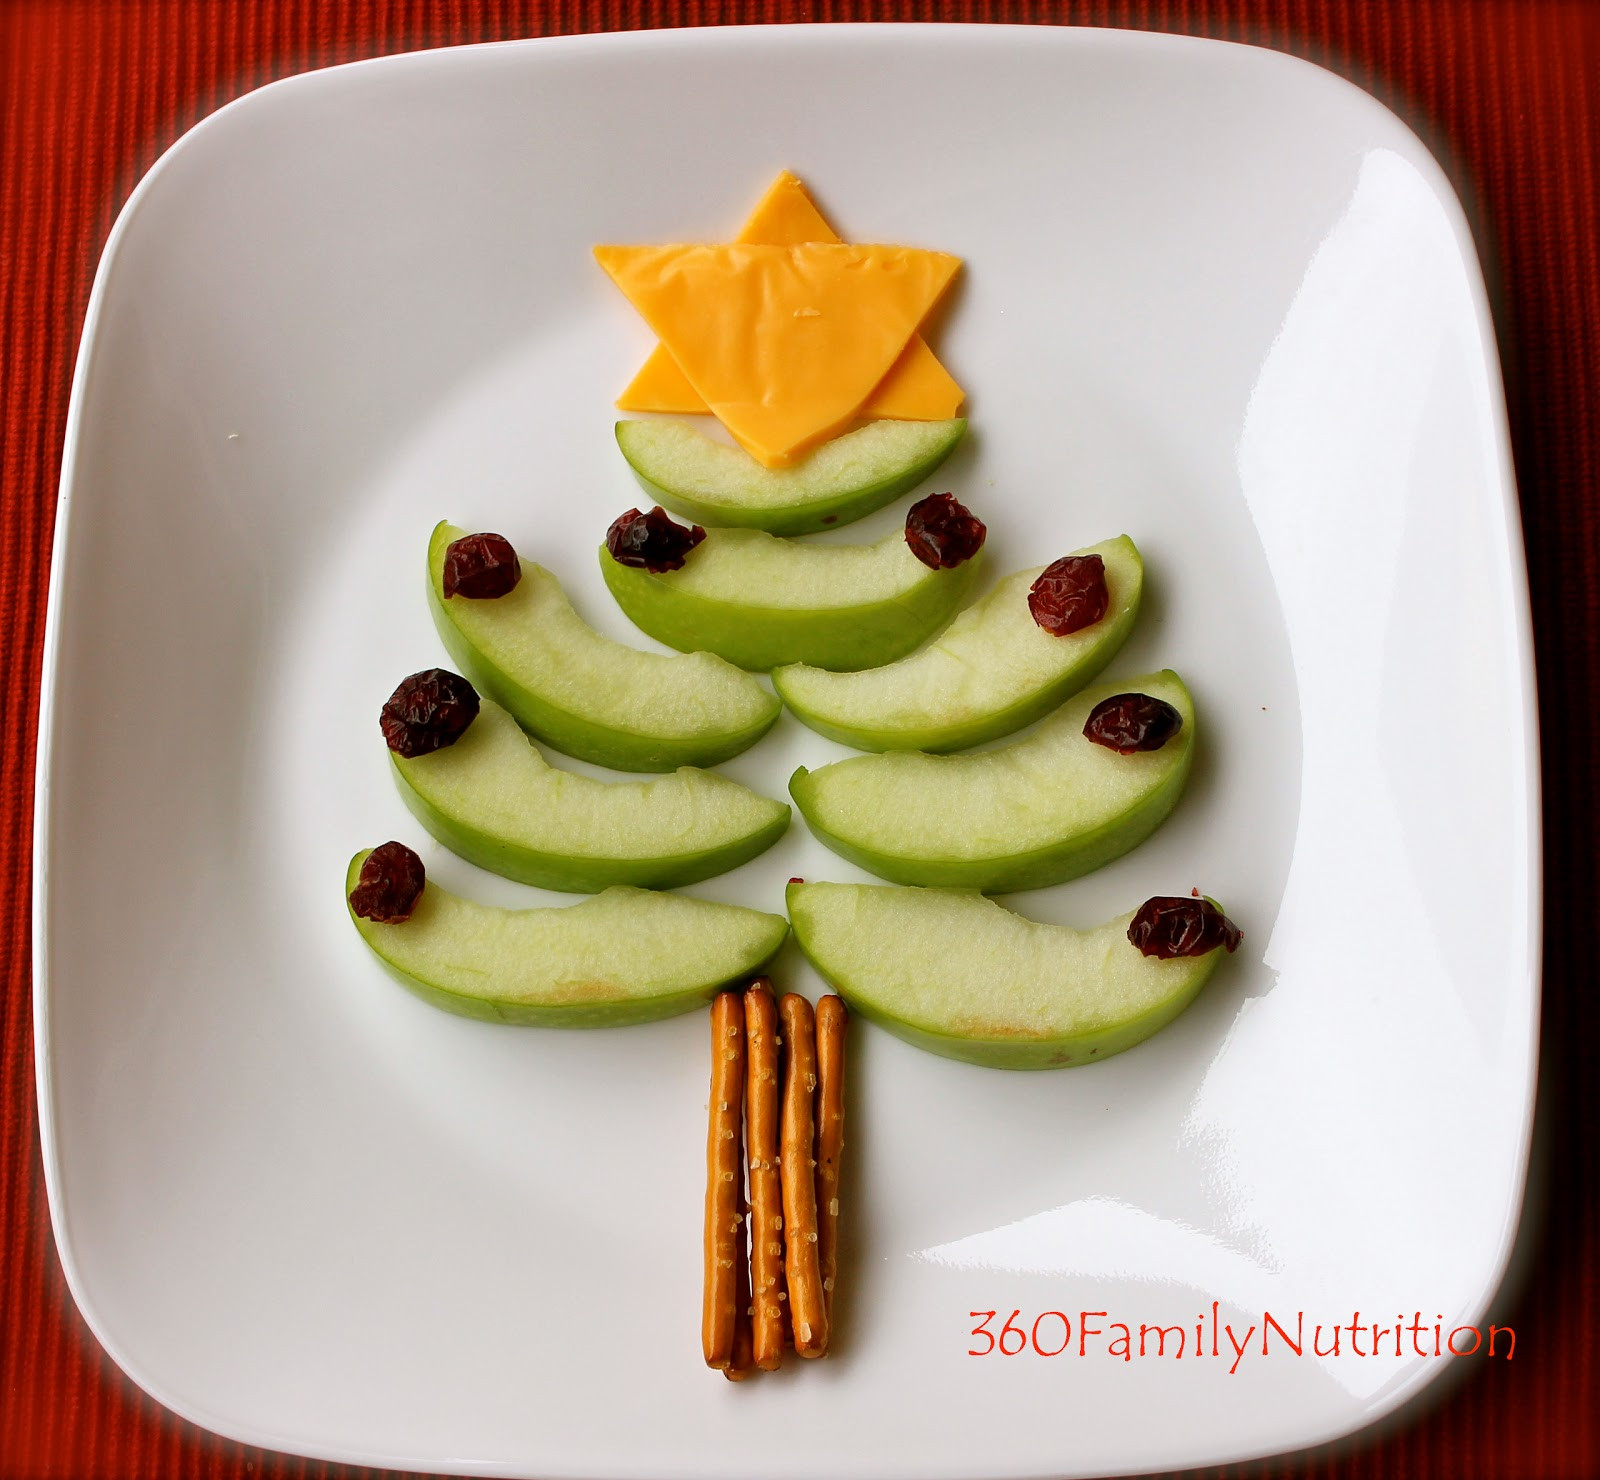 Healthy Christmas Snacks For Kids  360FamilyNutrition Healthy Christmas Tree Snack